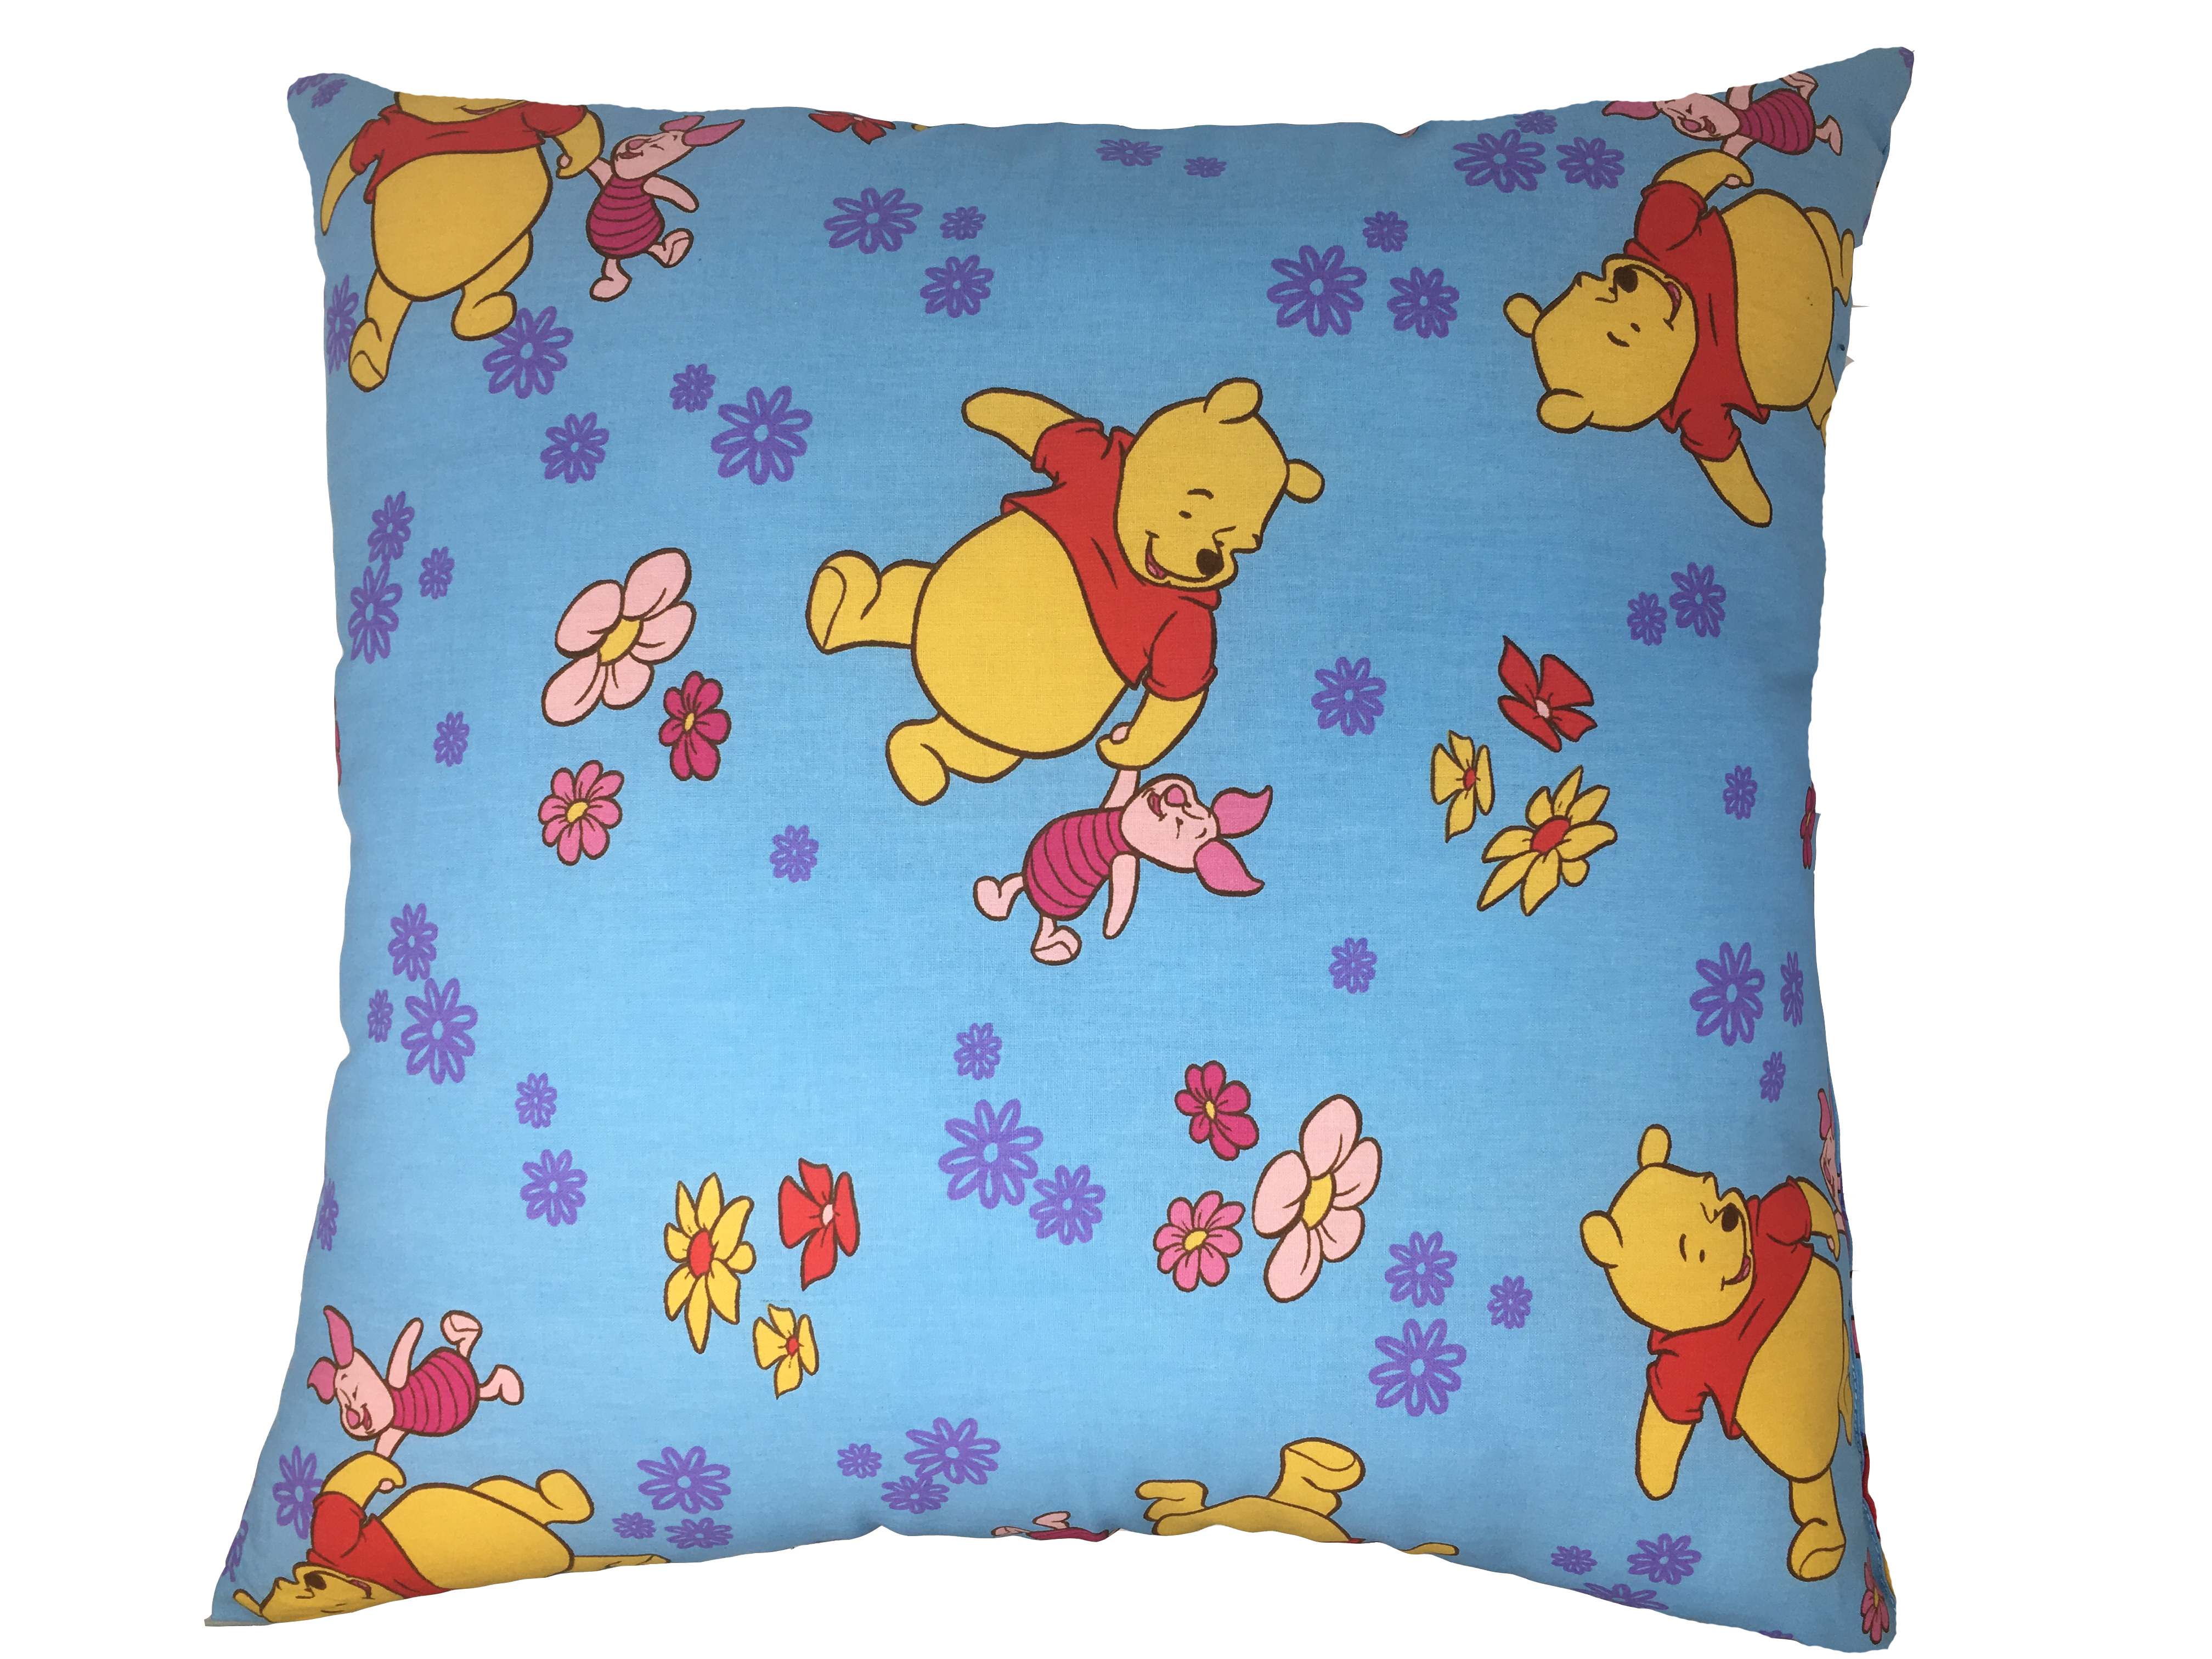 7c6a2ae6204b Winnie The Pooh Filled Cushion - Pale Blue with Flowers